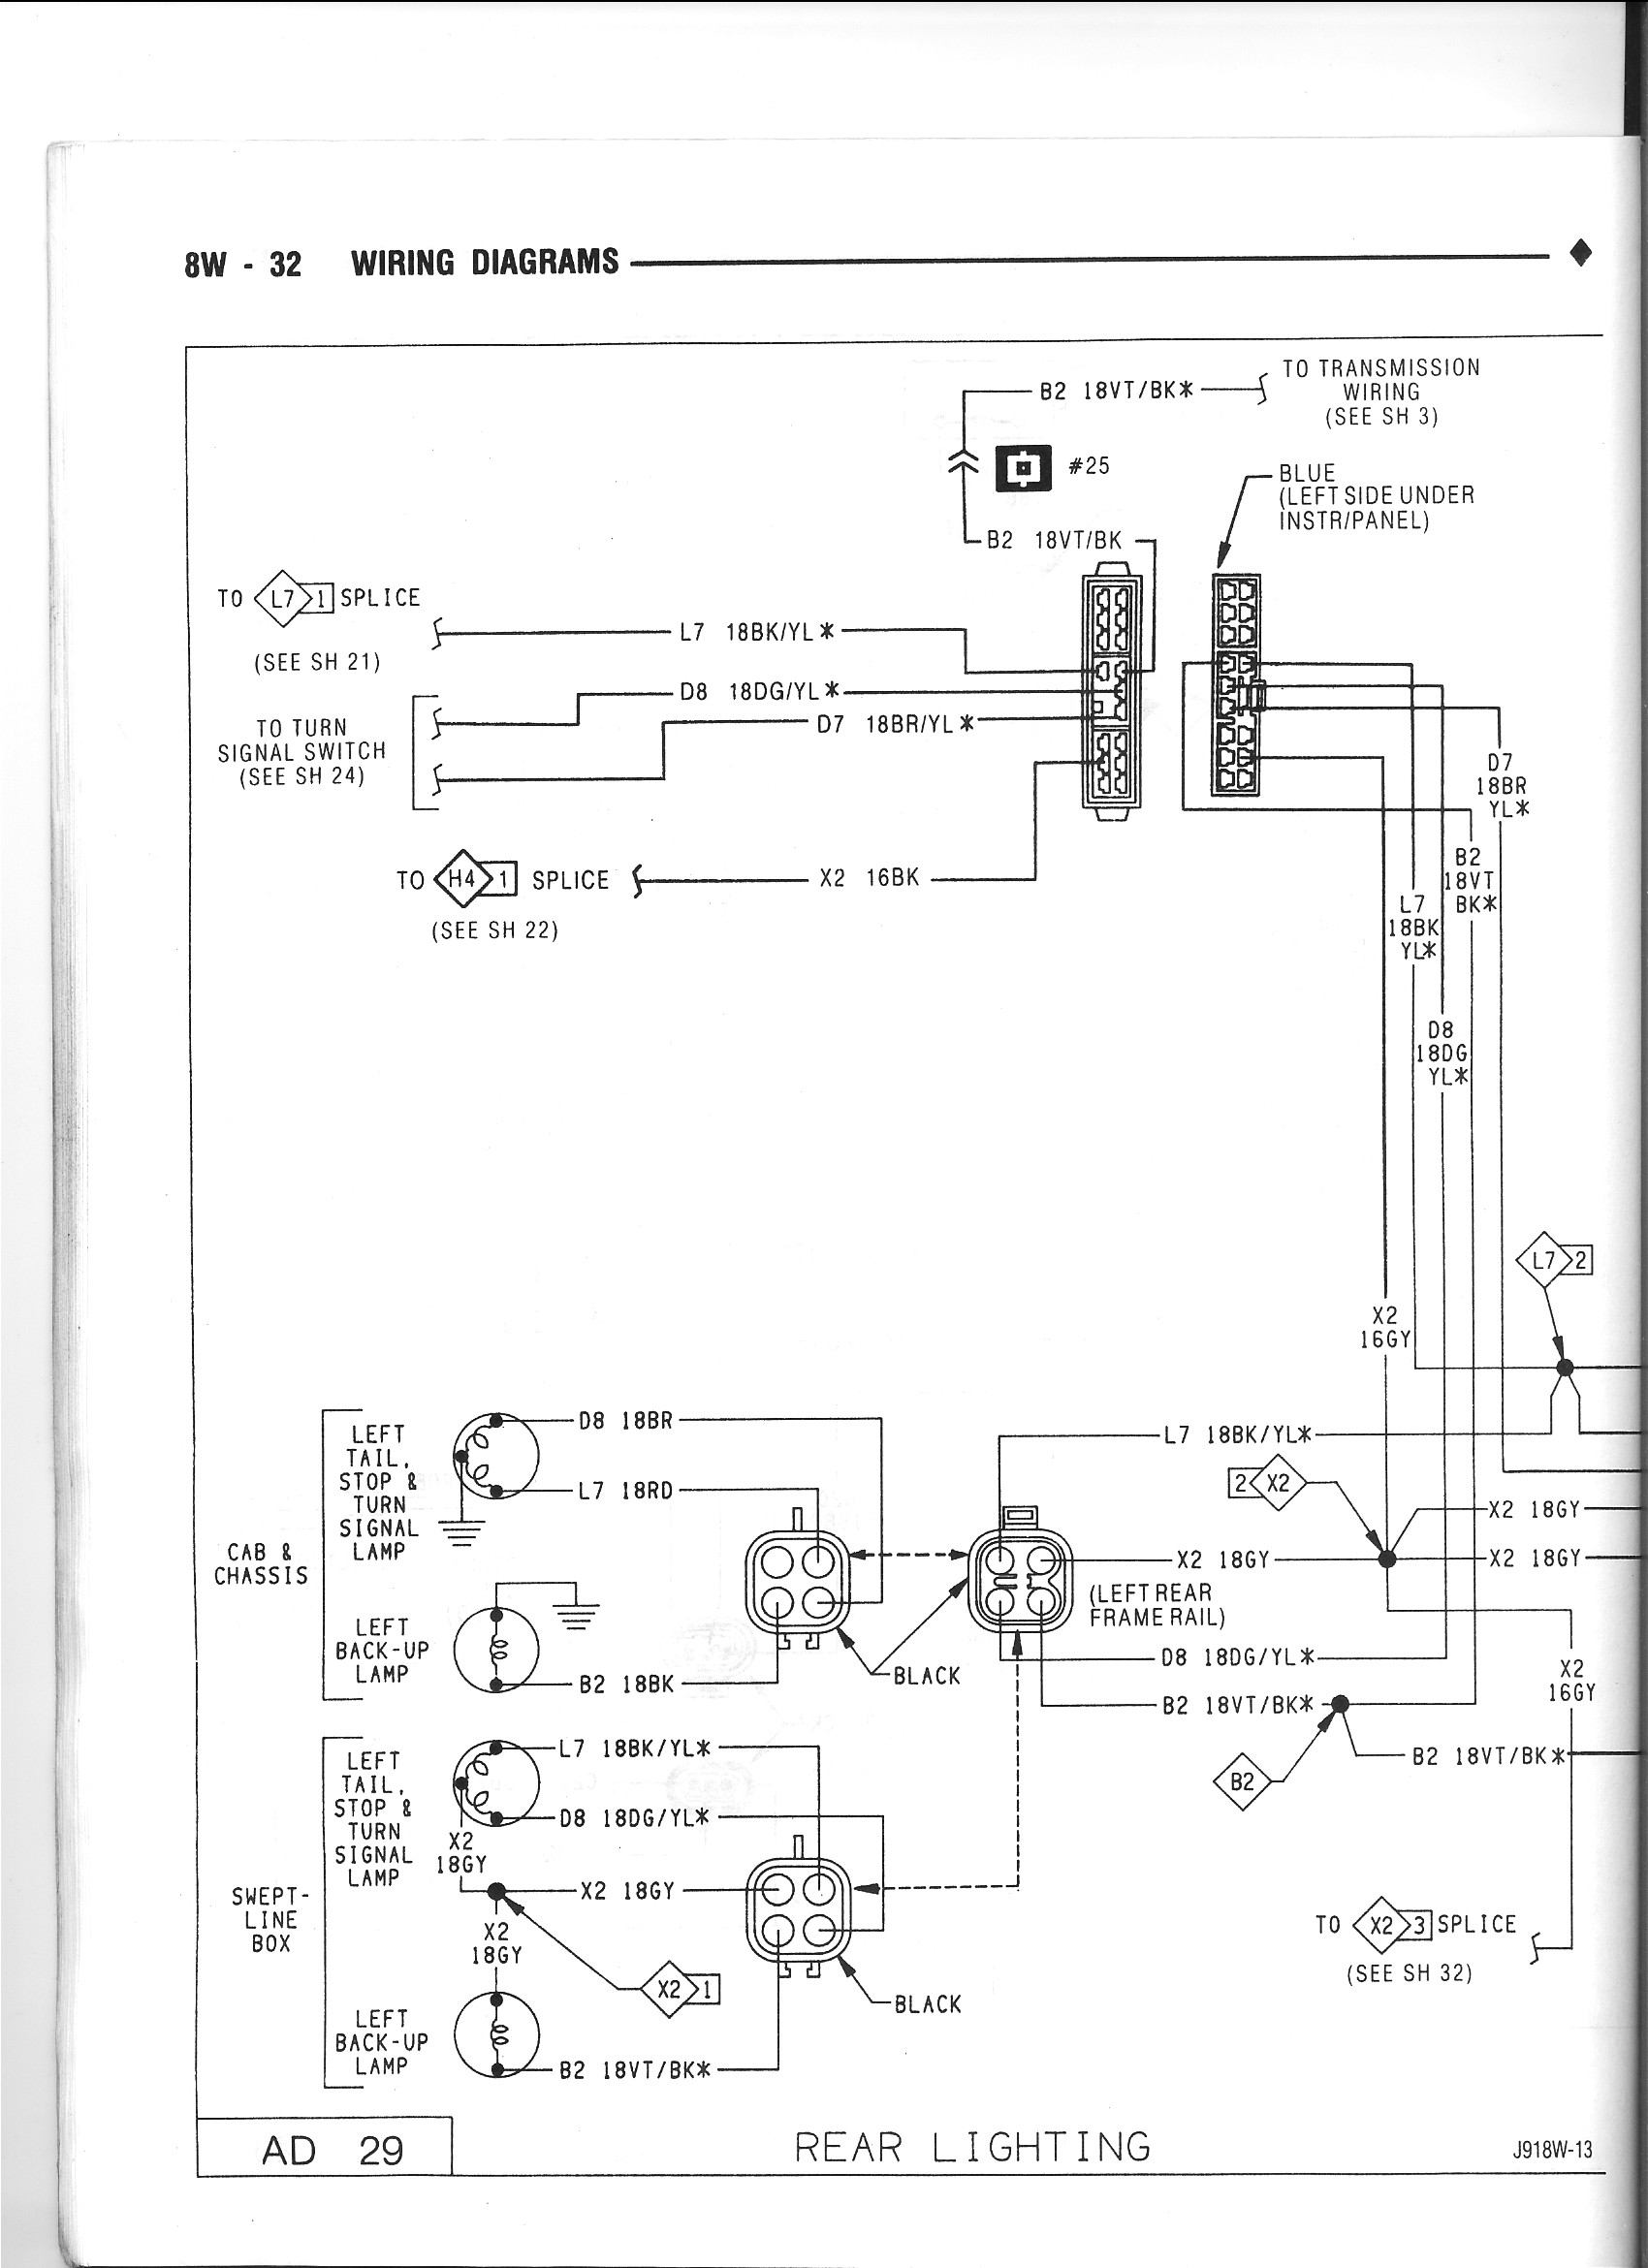 1991 dodge van wiring diagram tail light wiring diagram? - dodge cummins diesel forum